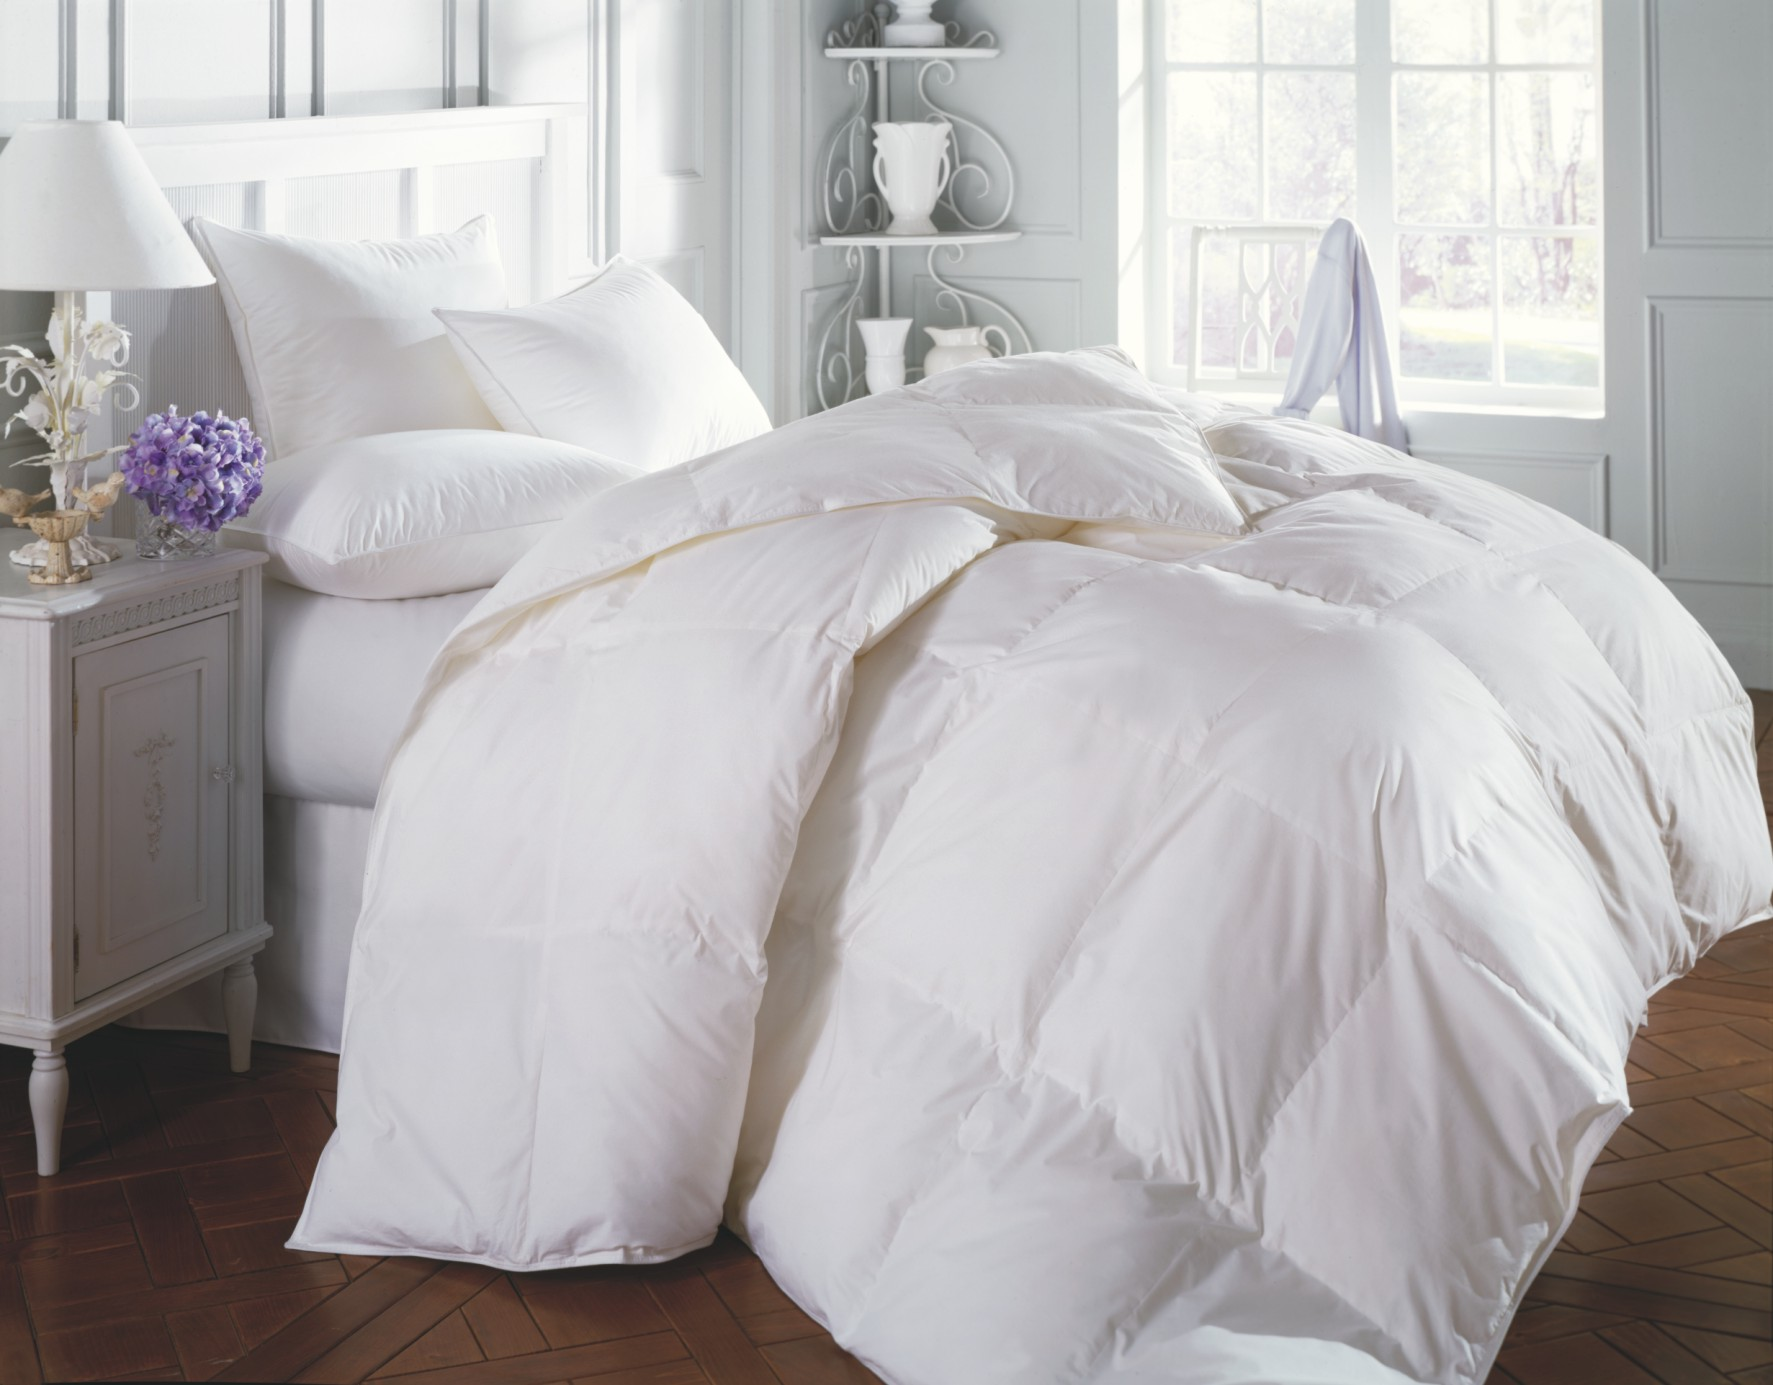 The Down Factory Store Offers Down Bed Comforters And